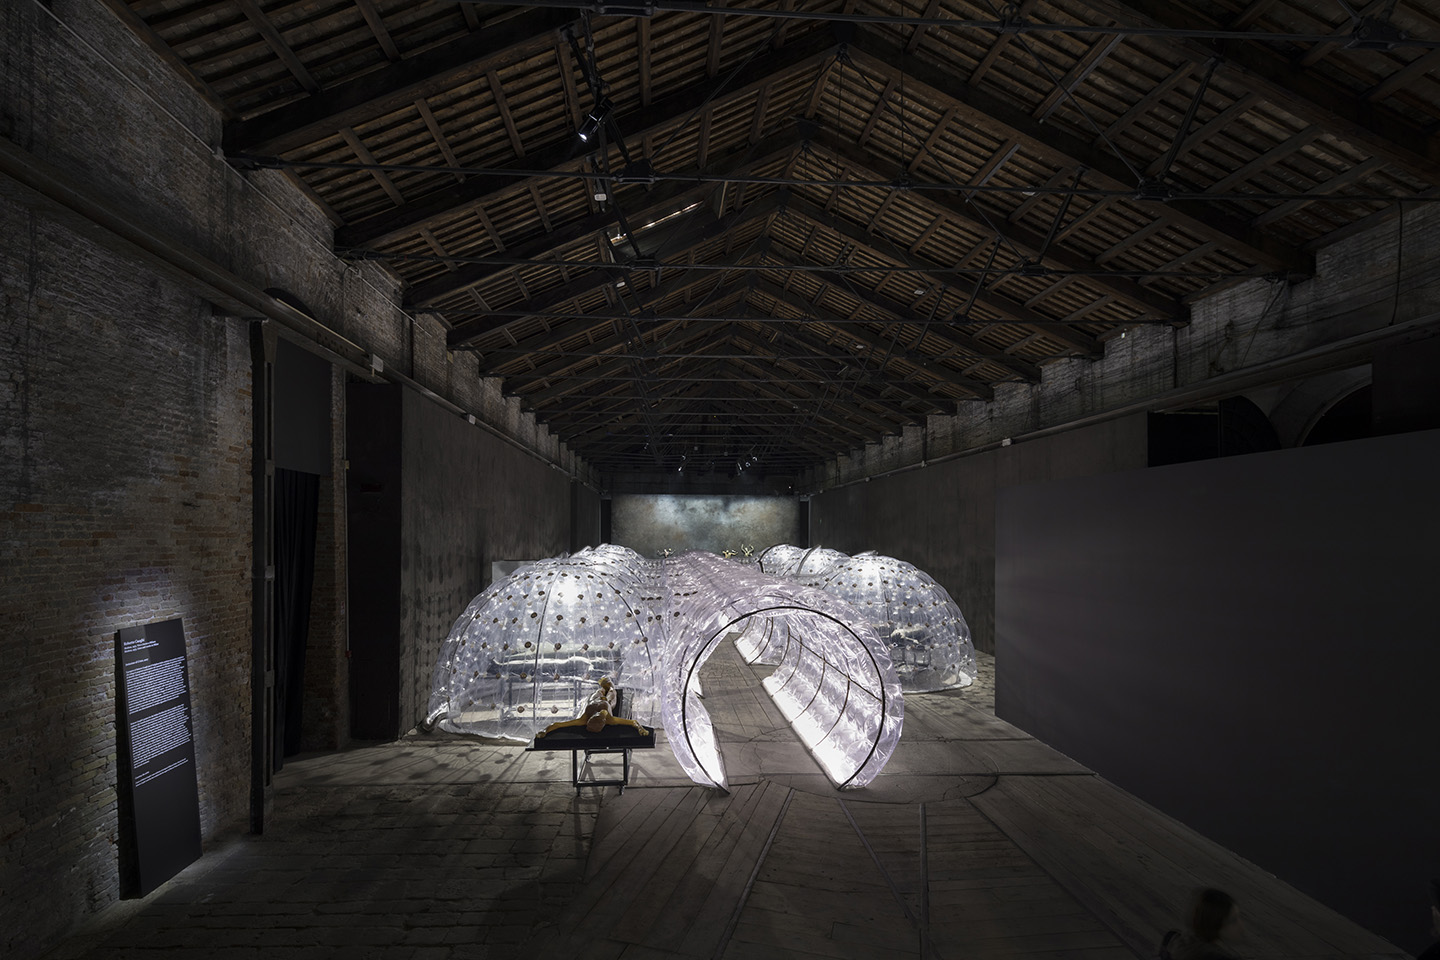 Contemporary basketry venice biennale 2017 for Artisti biennale venezia